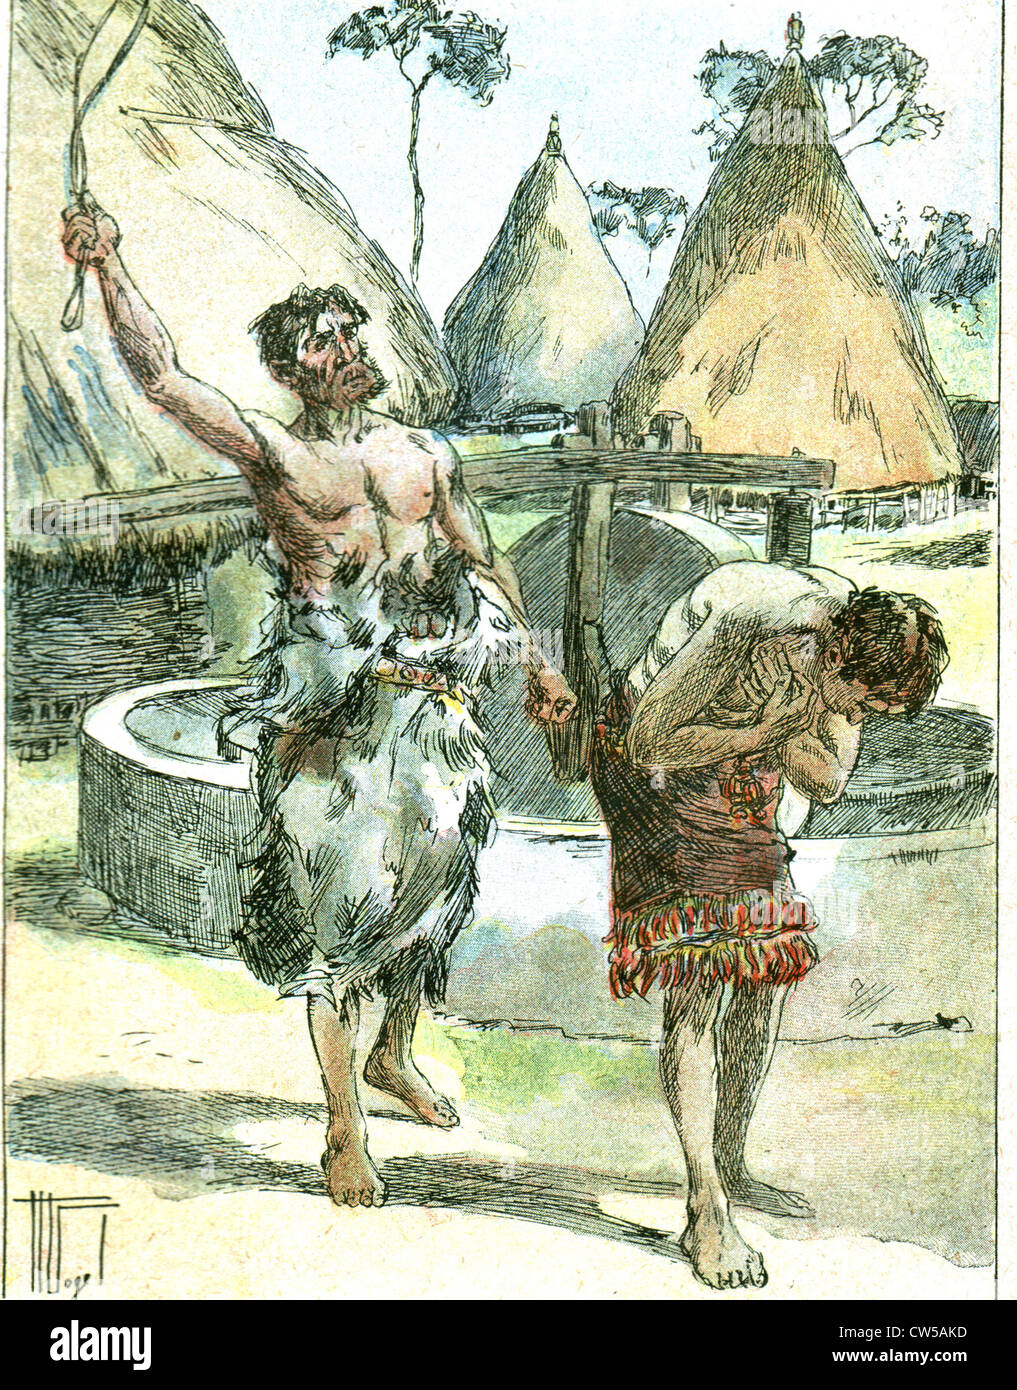 Illustration of the tale 'The Men of the Stone Age : 'the captive' by Jérôme Doucet in 'Mon - Stock Image